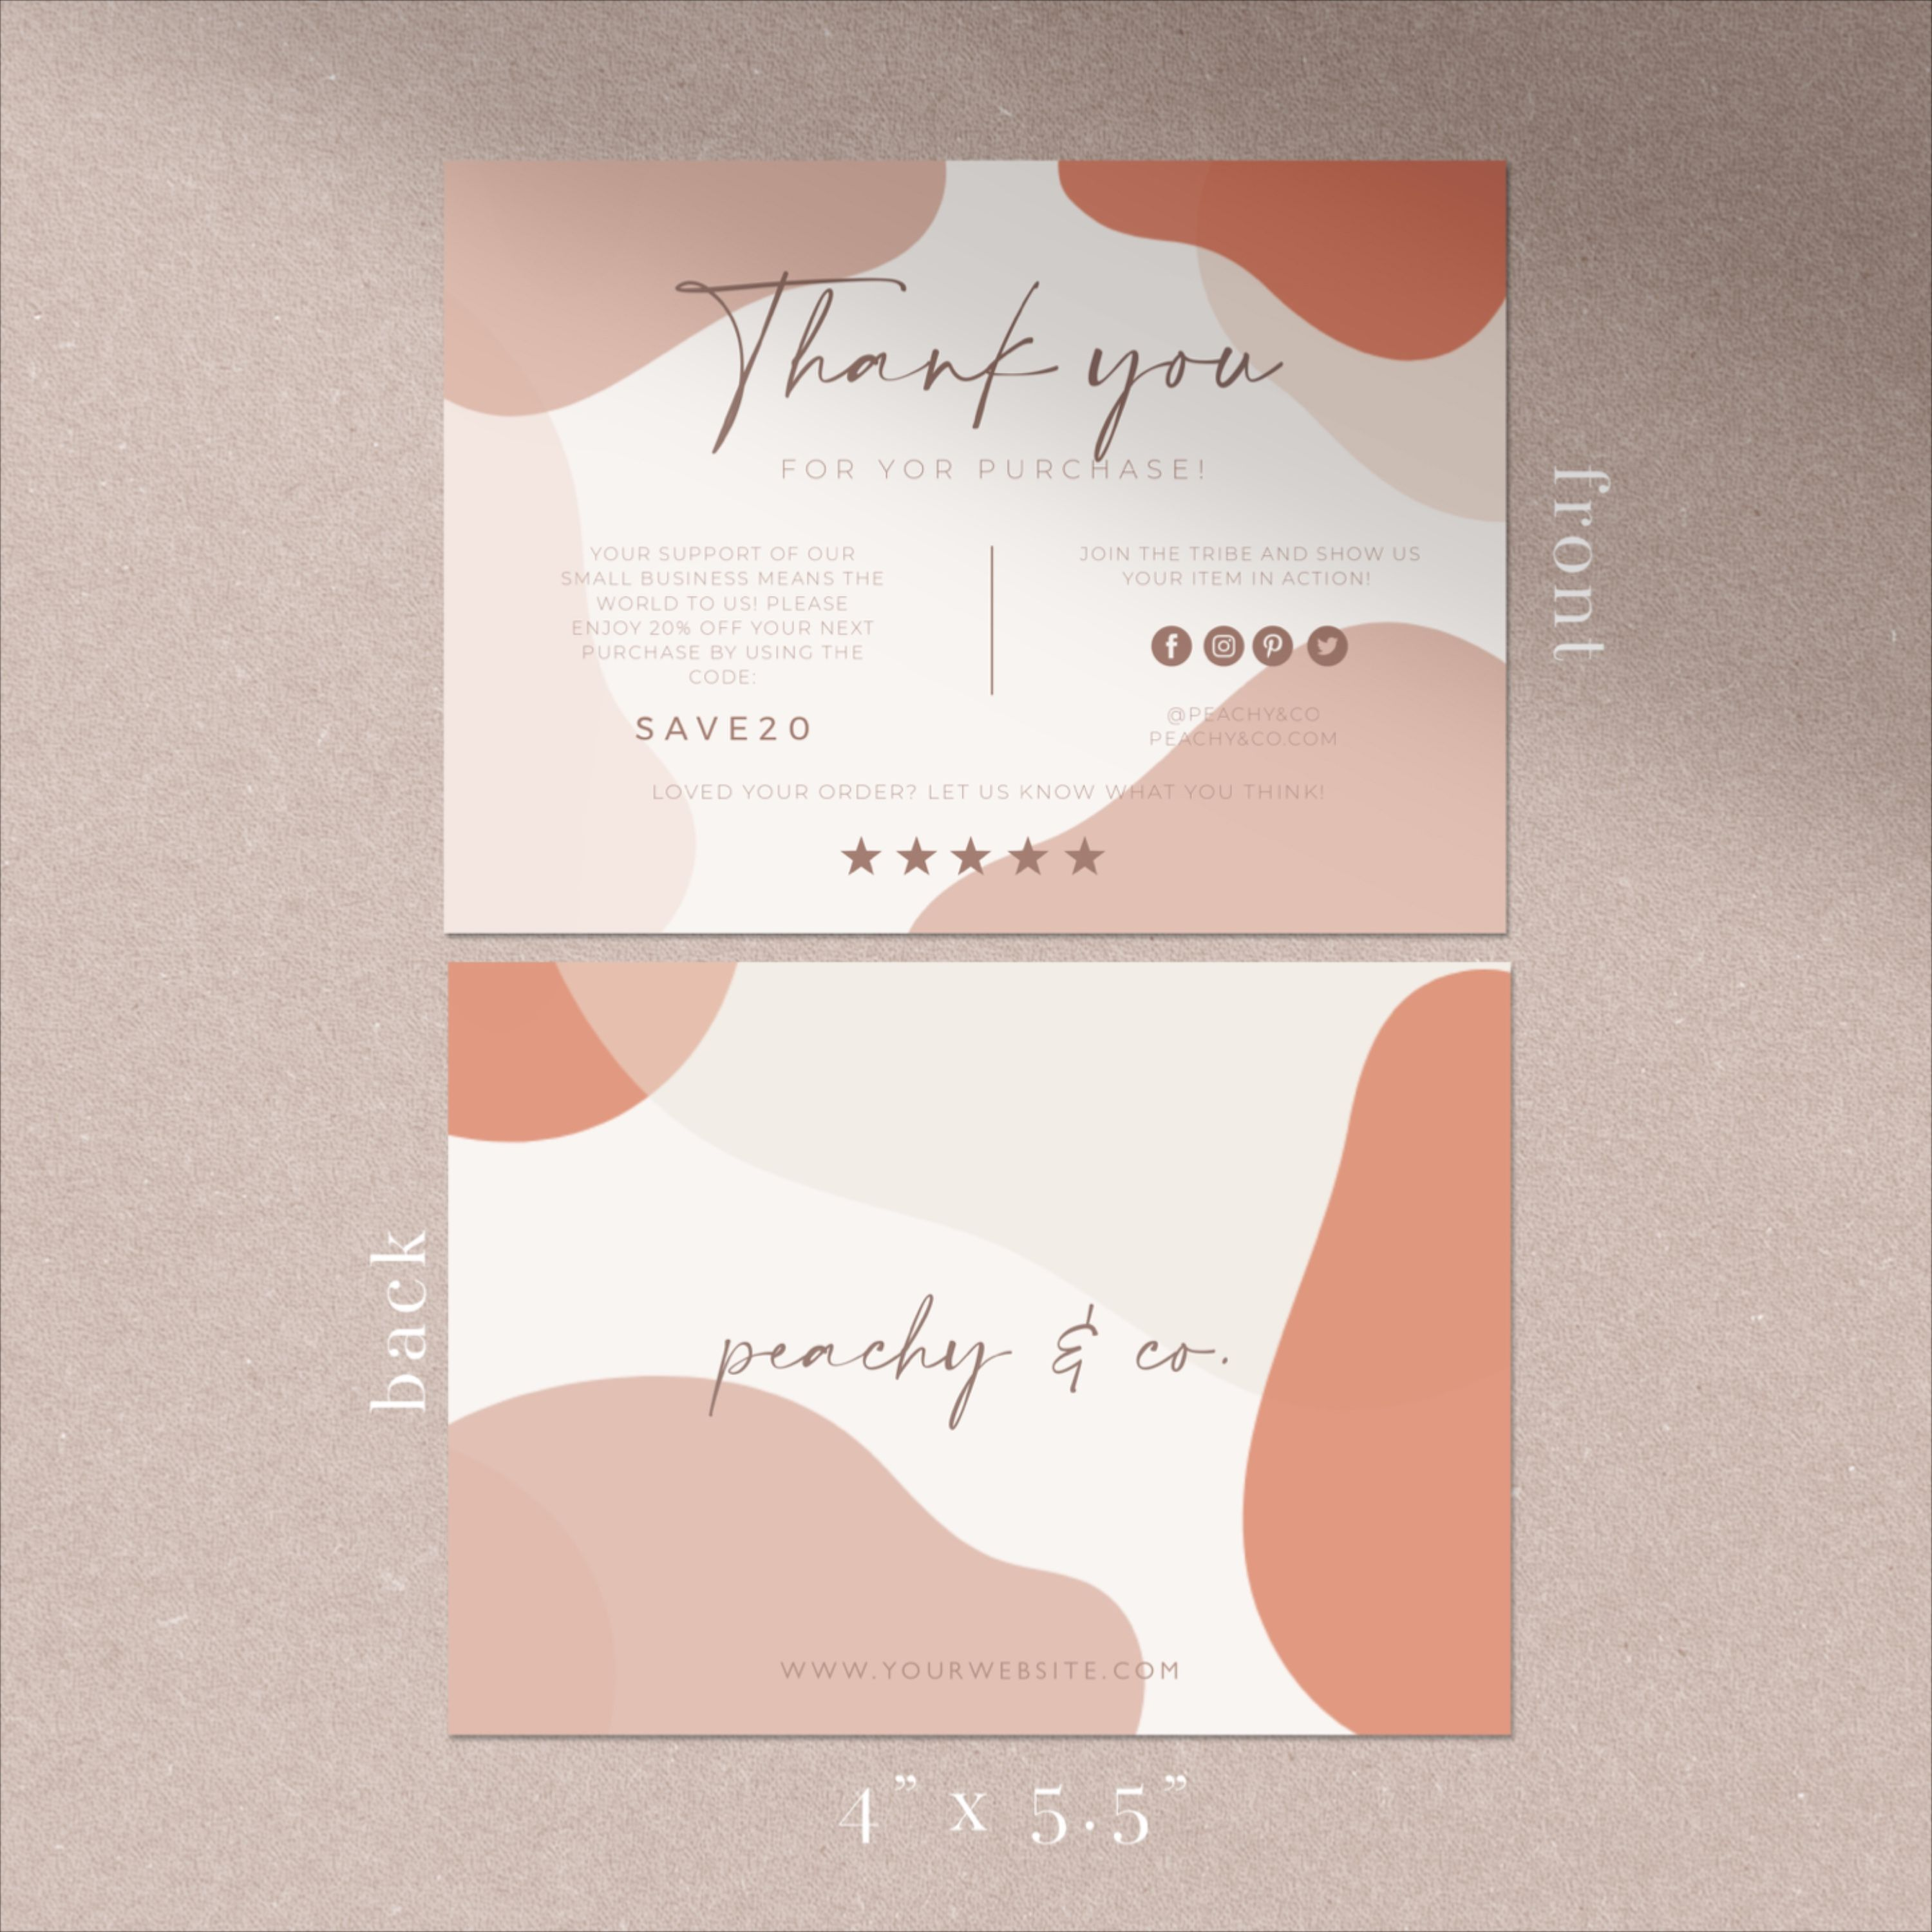 Abstract Modern Brown Blush Thank You Card Small Business Thank You Package Insert Thank You For Your Purchase In 2021 Business Thank You Cards Thank You Cards Business Thank You